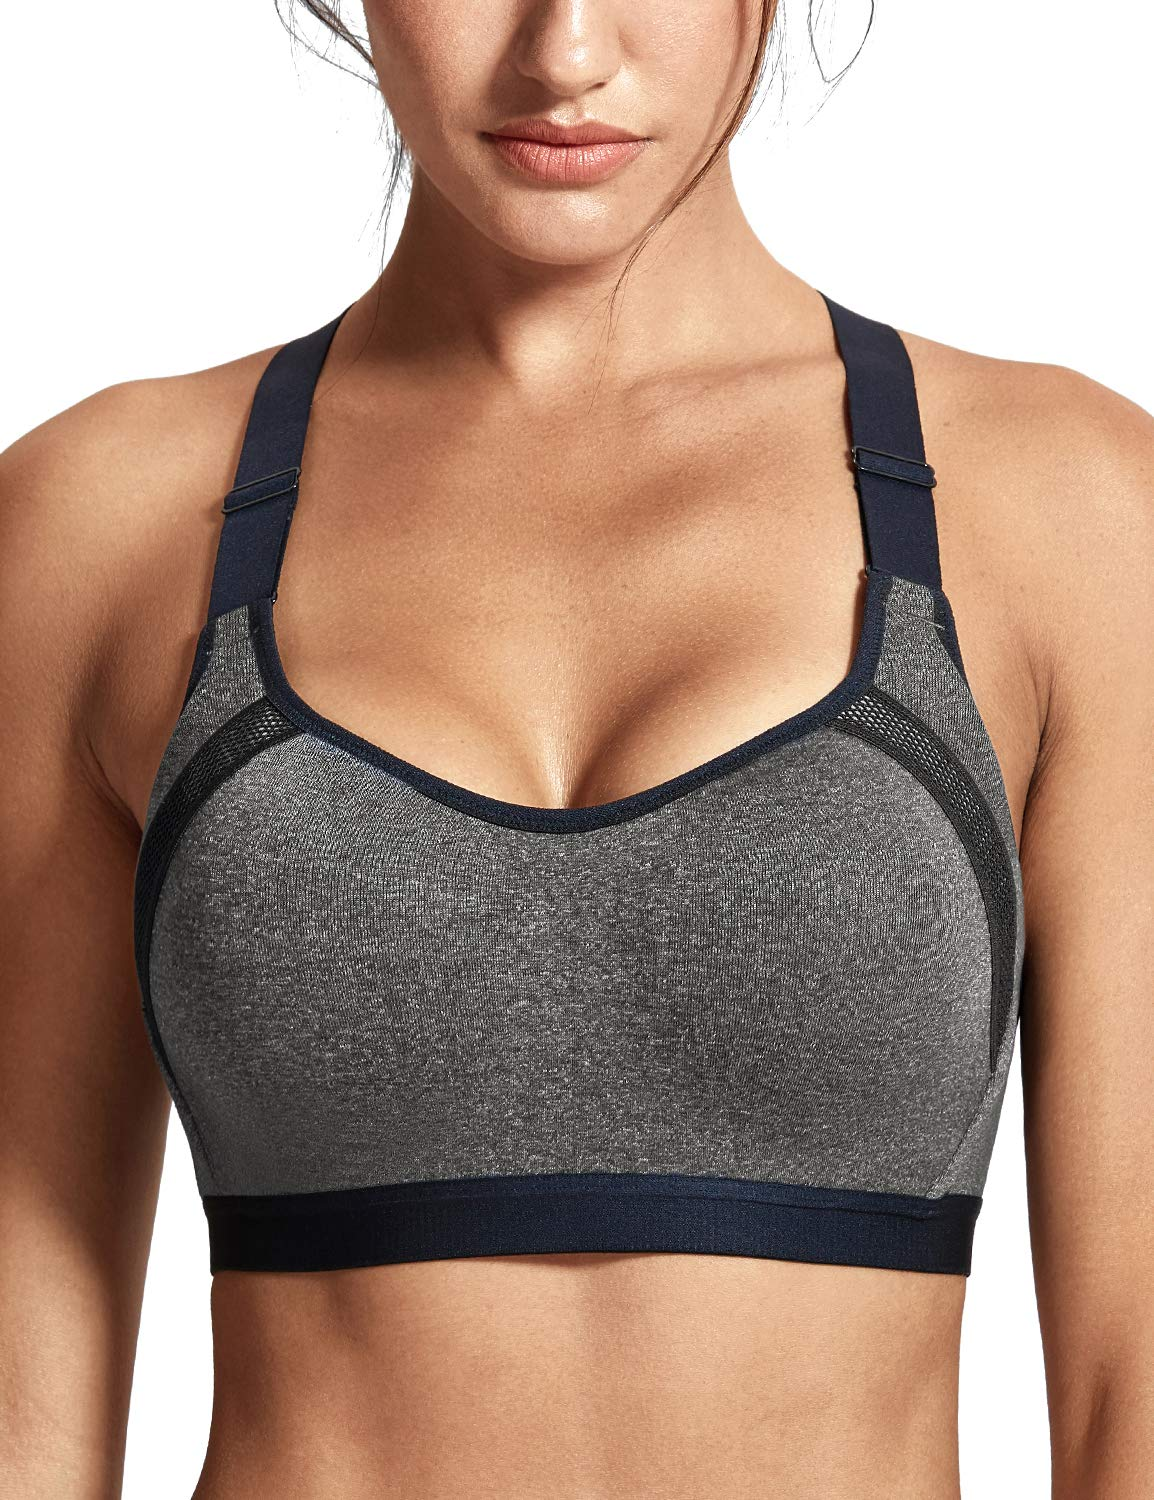 f008574e0b SYROKAN Women s Full Coverage Racerback High Impact Workout Firm Support Padded  Sports Bra Charcoal Heather-Racerback 40B